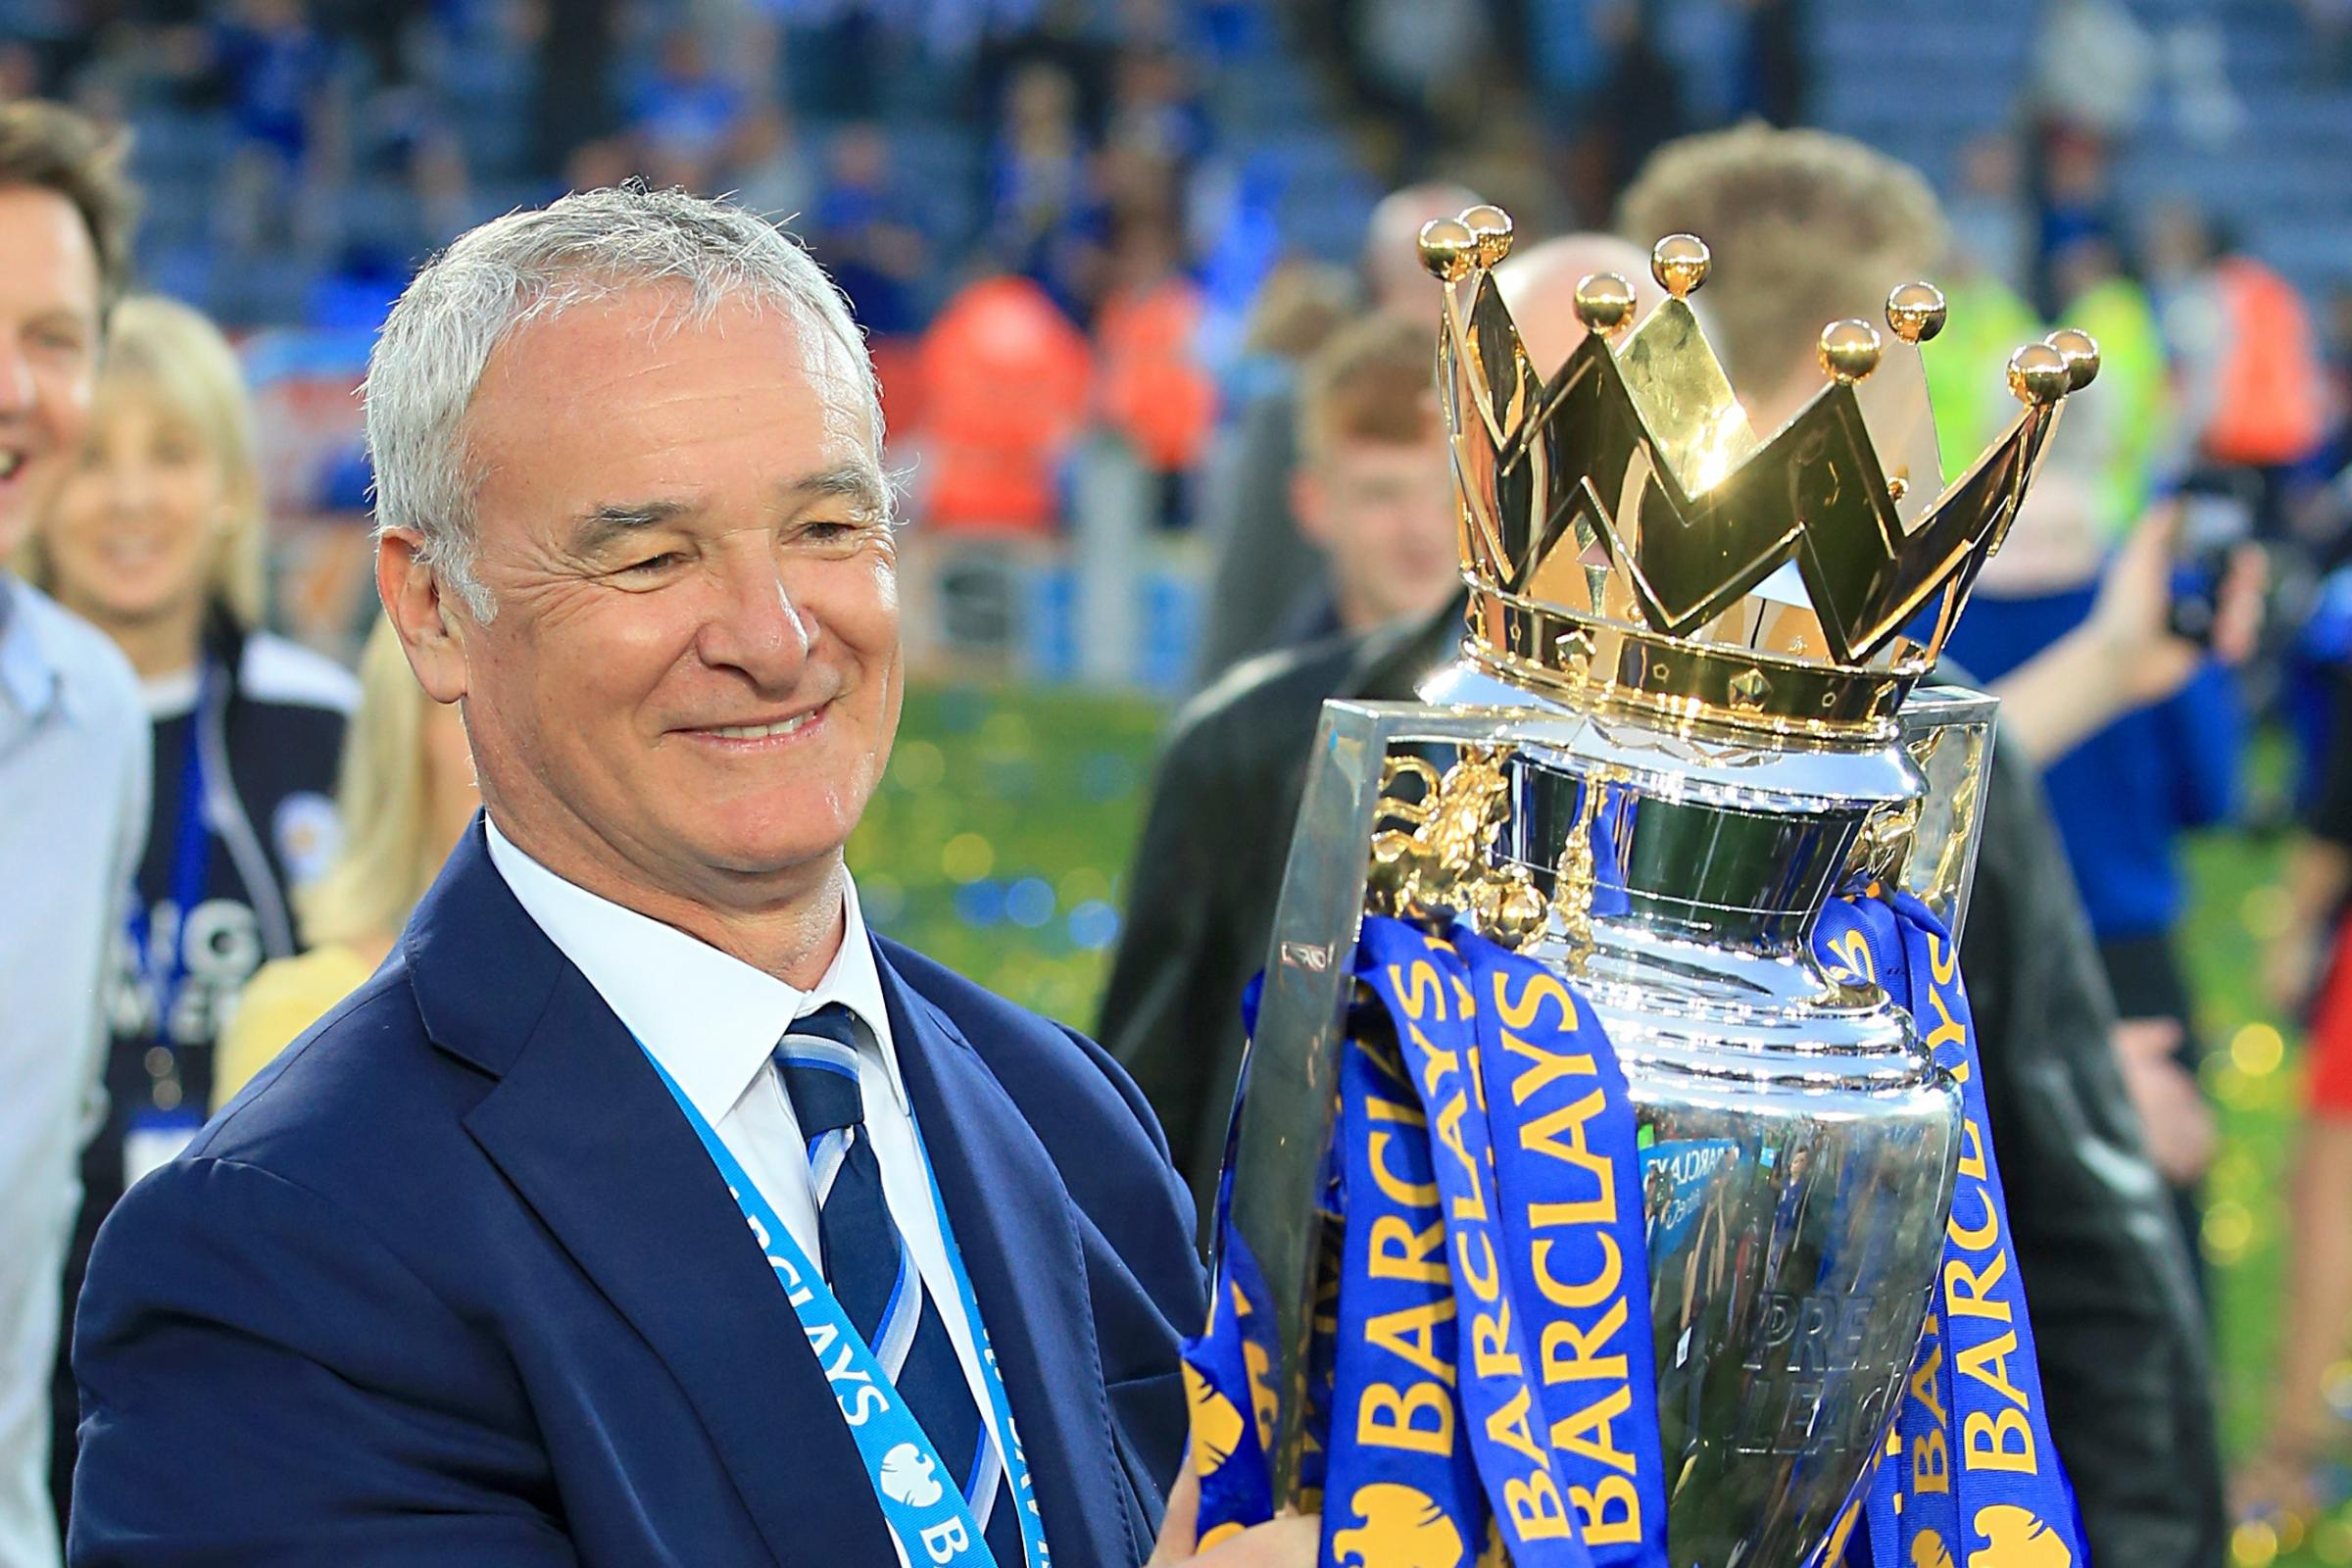 Ranieri aiming high after replacing Jokanovic at Fulham